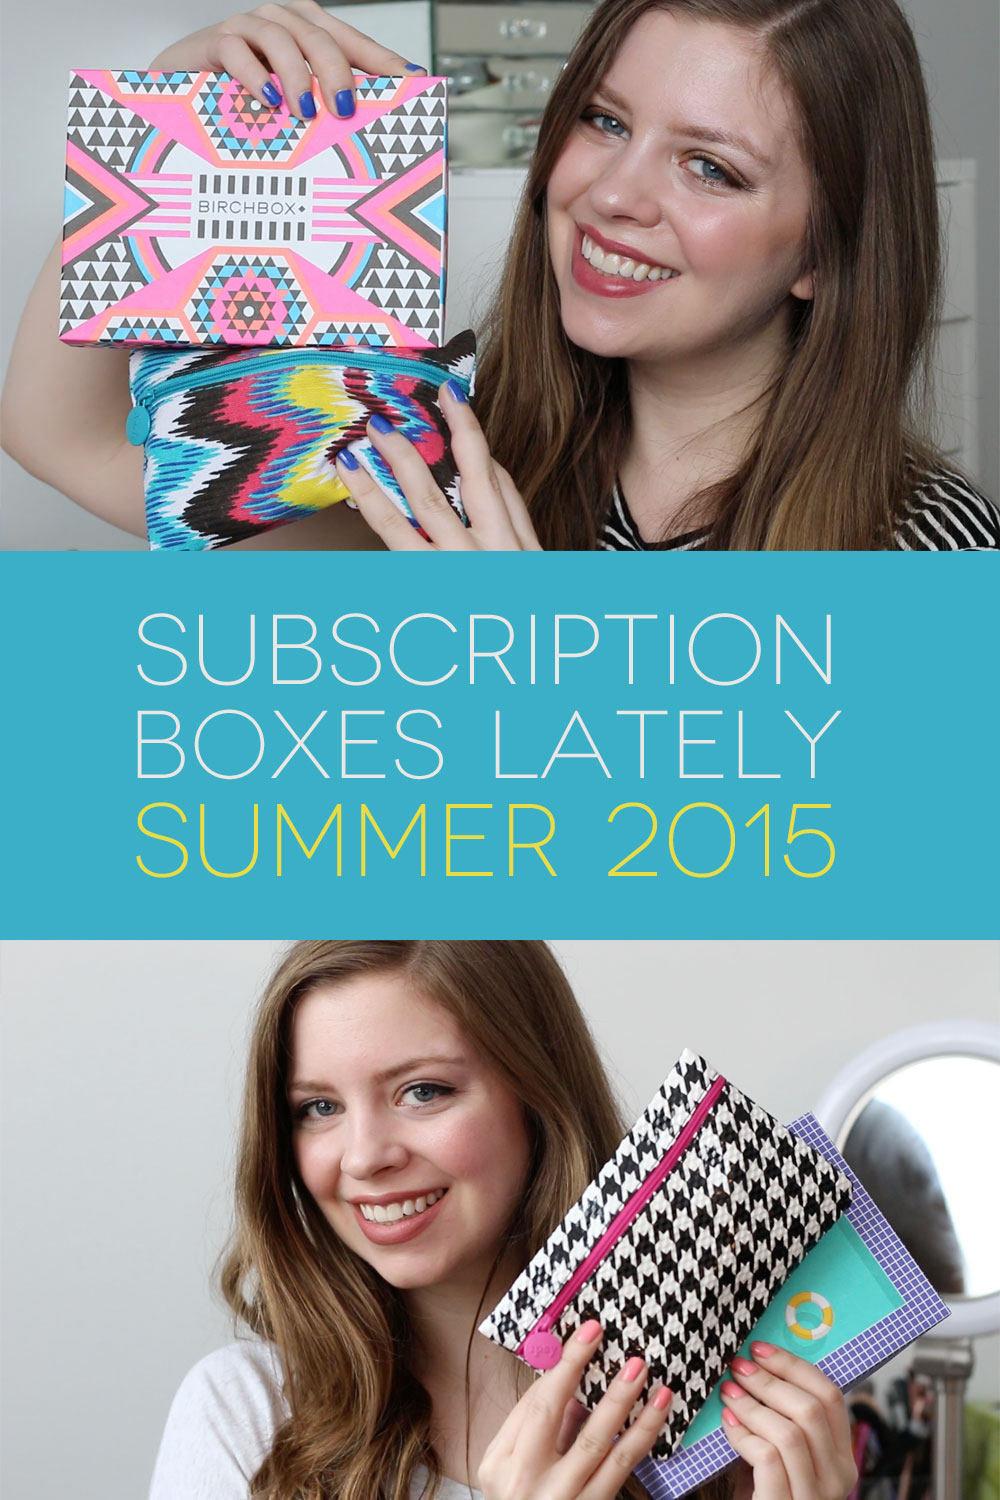 Subscription Boxes Lately Summer 2015: Ipsy, Birchbox, Julep Maven, The Zoe Report Box of Style, & Jouer Le Matchbox Unboxing & Review // hellorigby seattle beauty blog